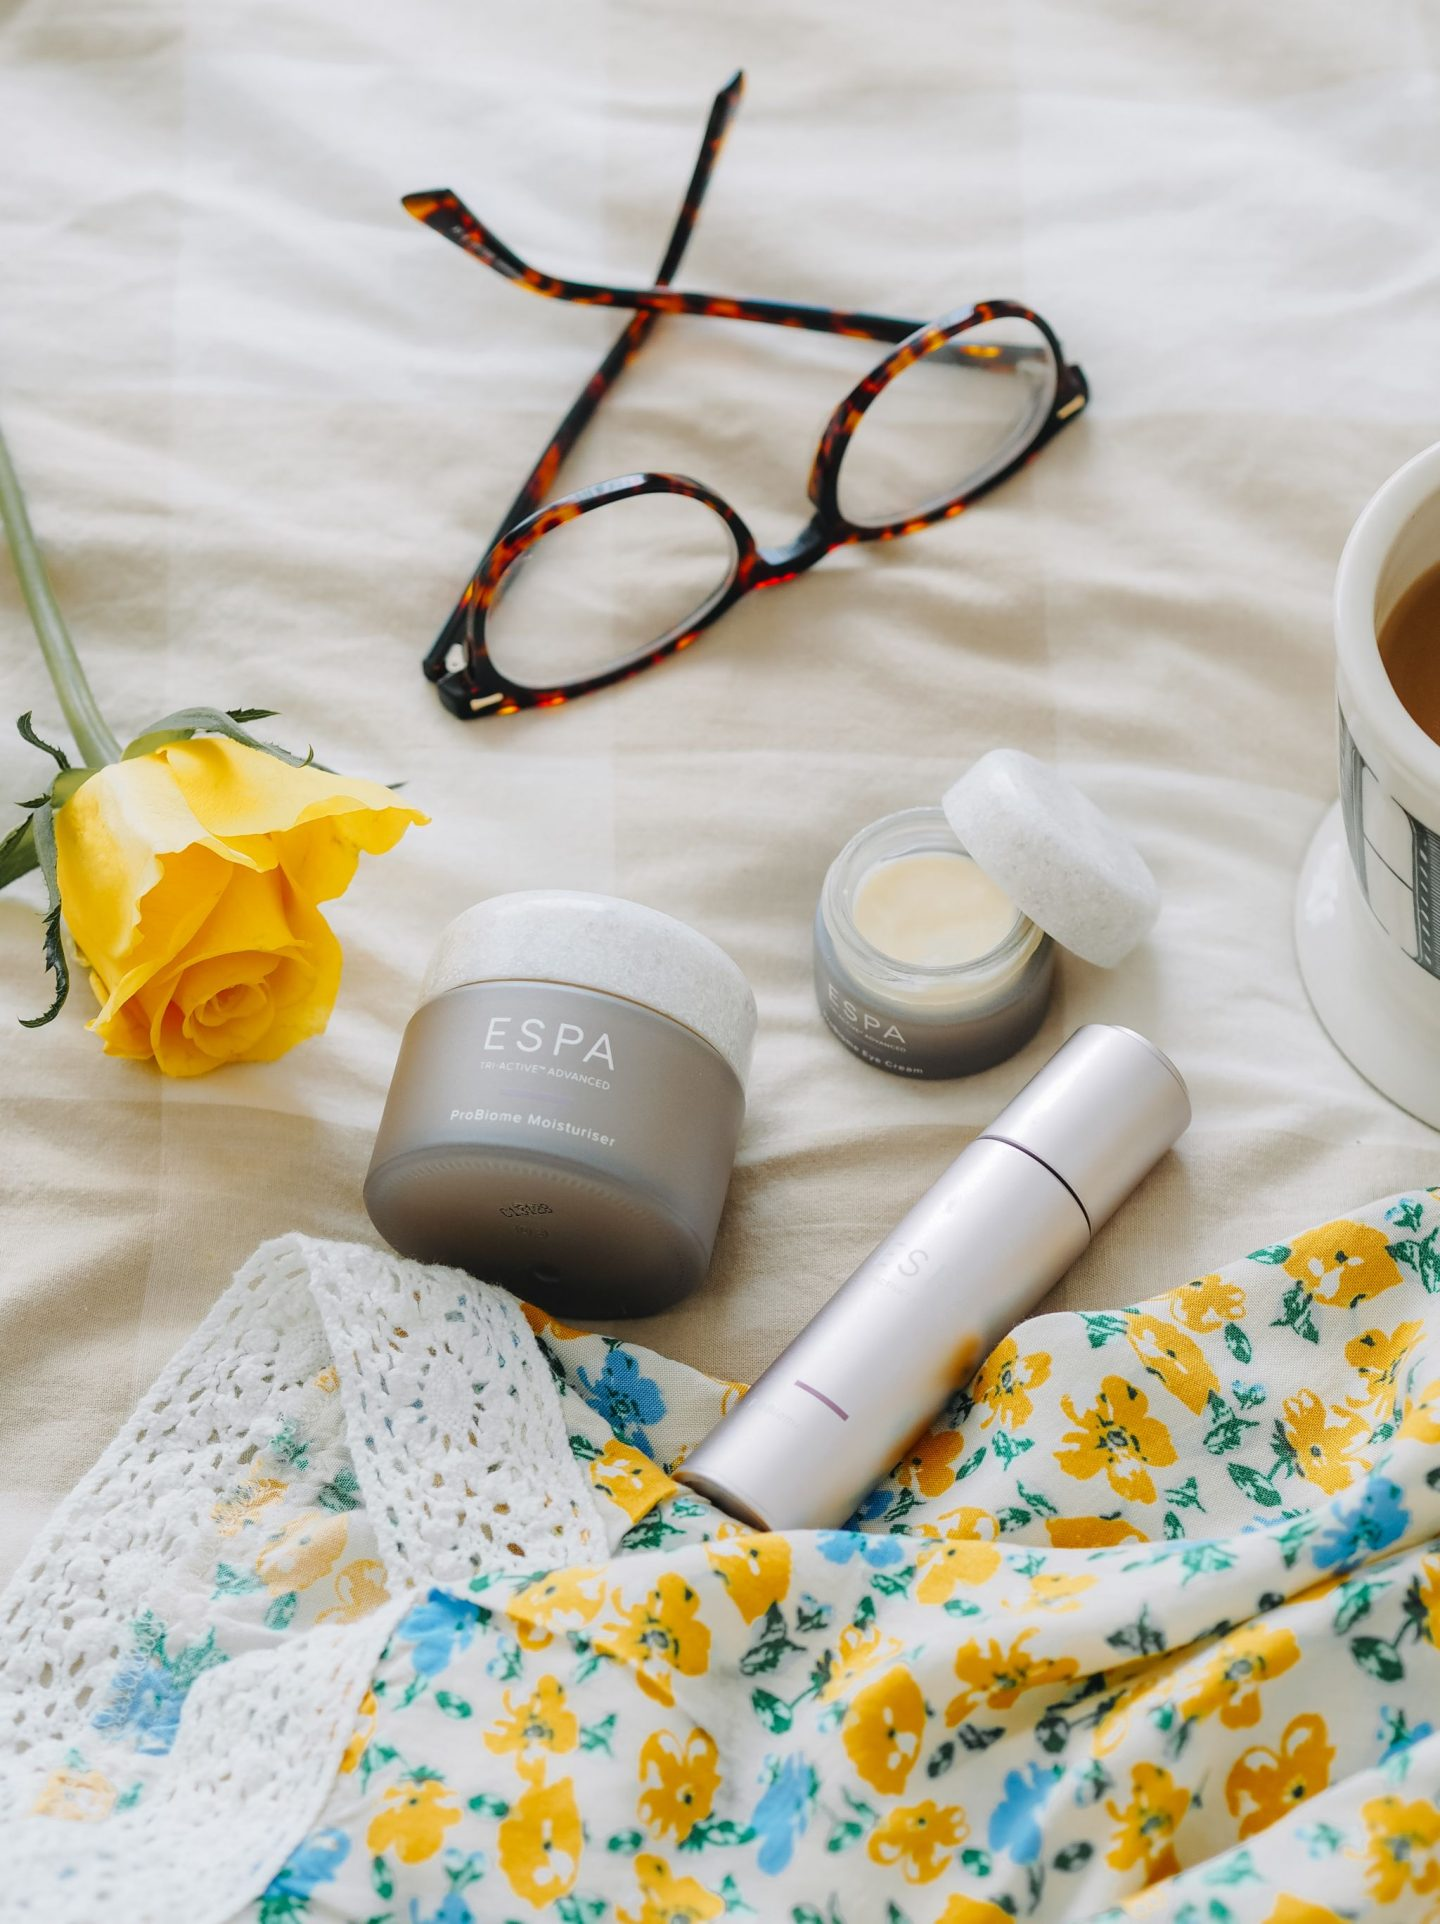 Your MicroBiome Is The Secret To Great Skin: NEW ESPA Tri-Active Advanced ProBiome Skincare